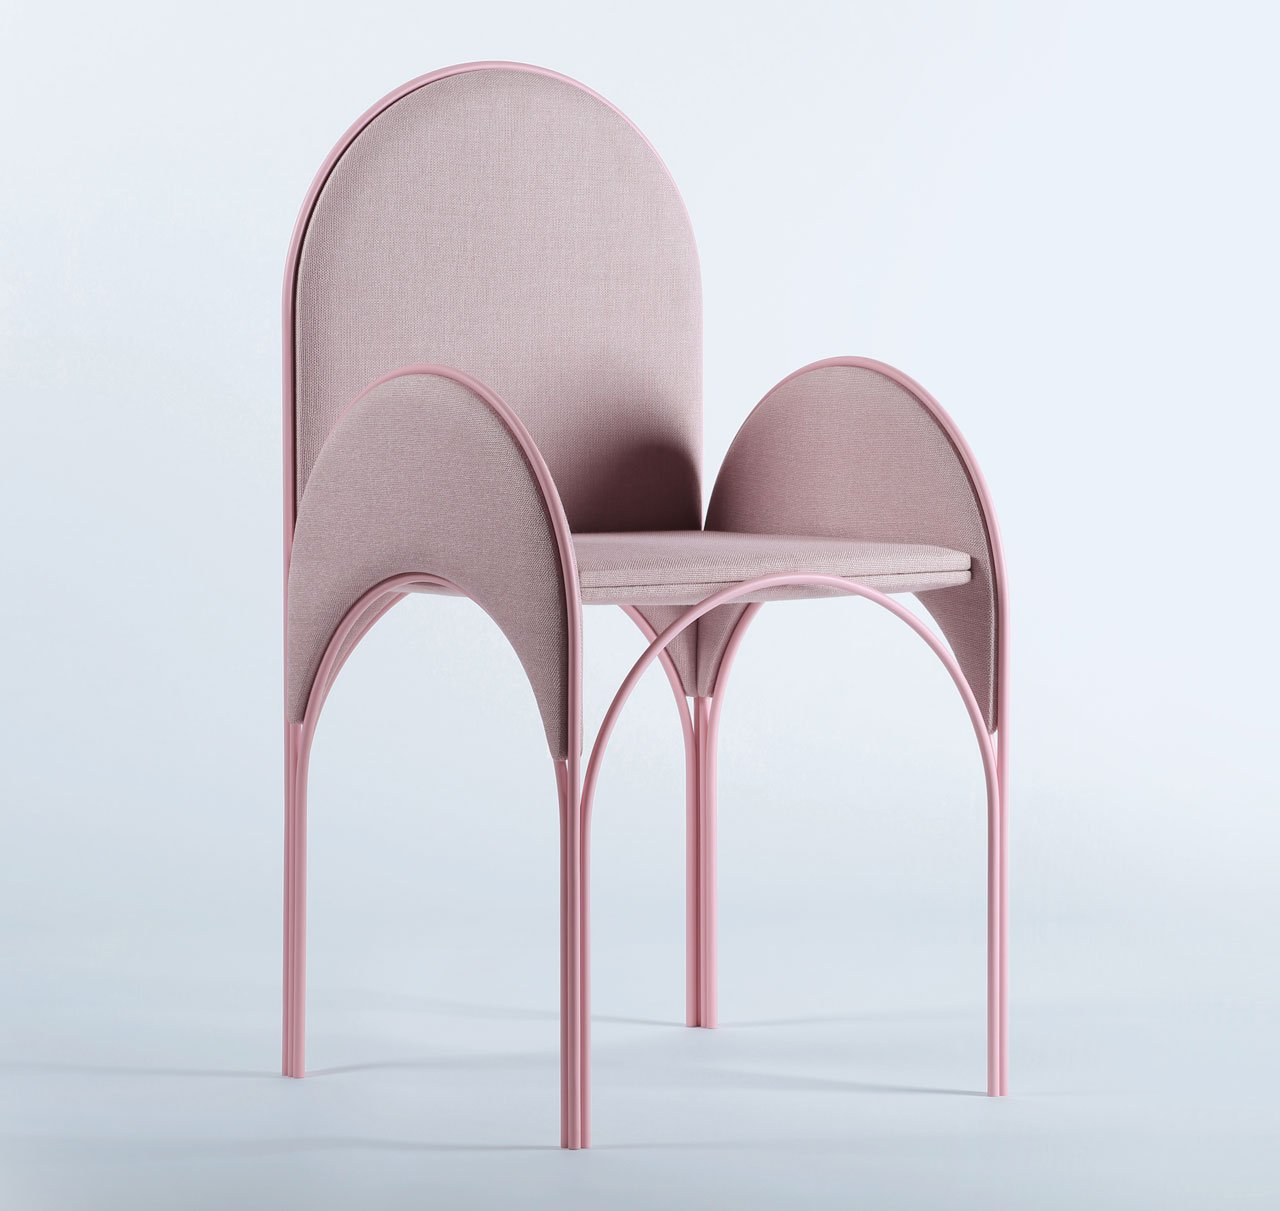 HAWA Beirut (Arabic: a light summer breeze or even a deep love, a passion toward someone or something) by Richard Yasmine. A collection of  light or airy furniture inspired from the arches of the Lebanese architecture.Photo by BizarreBeirut.